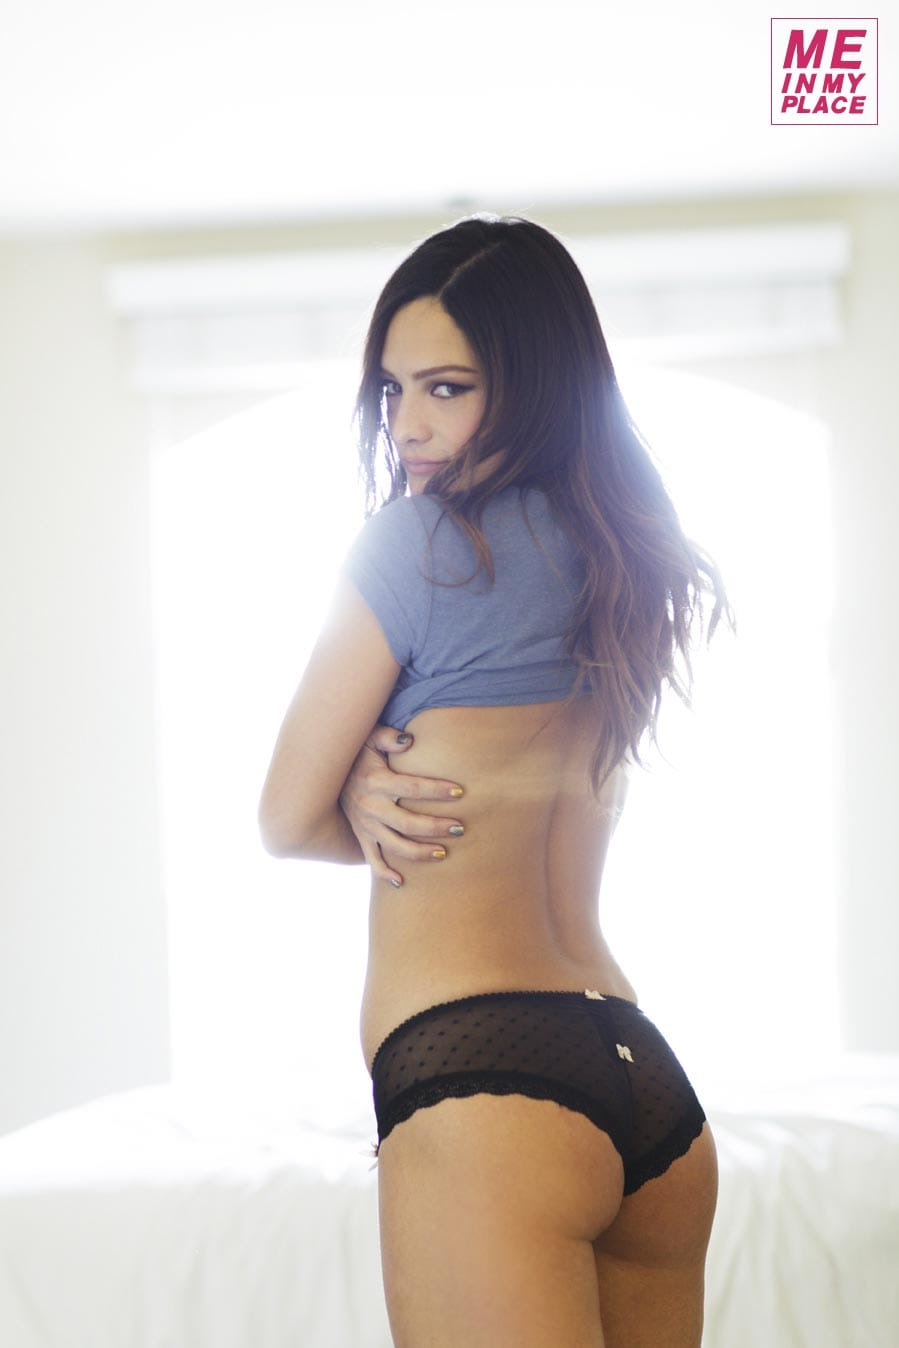 Jessica jane clement topless cowgirl 5